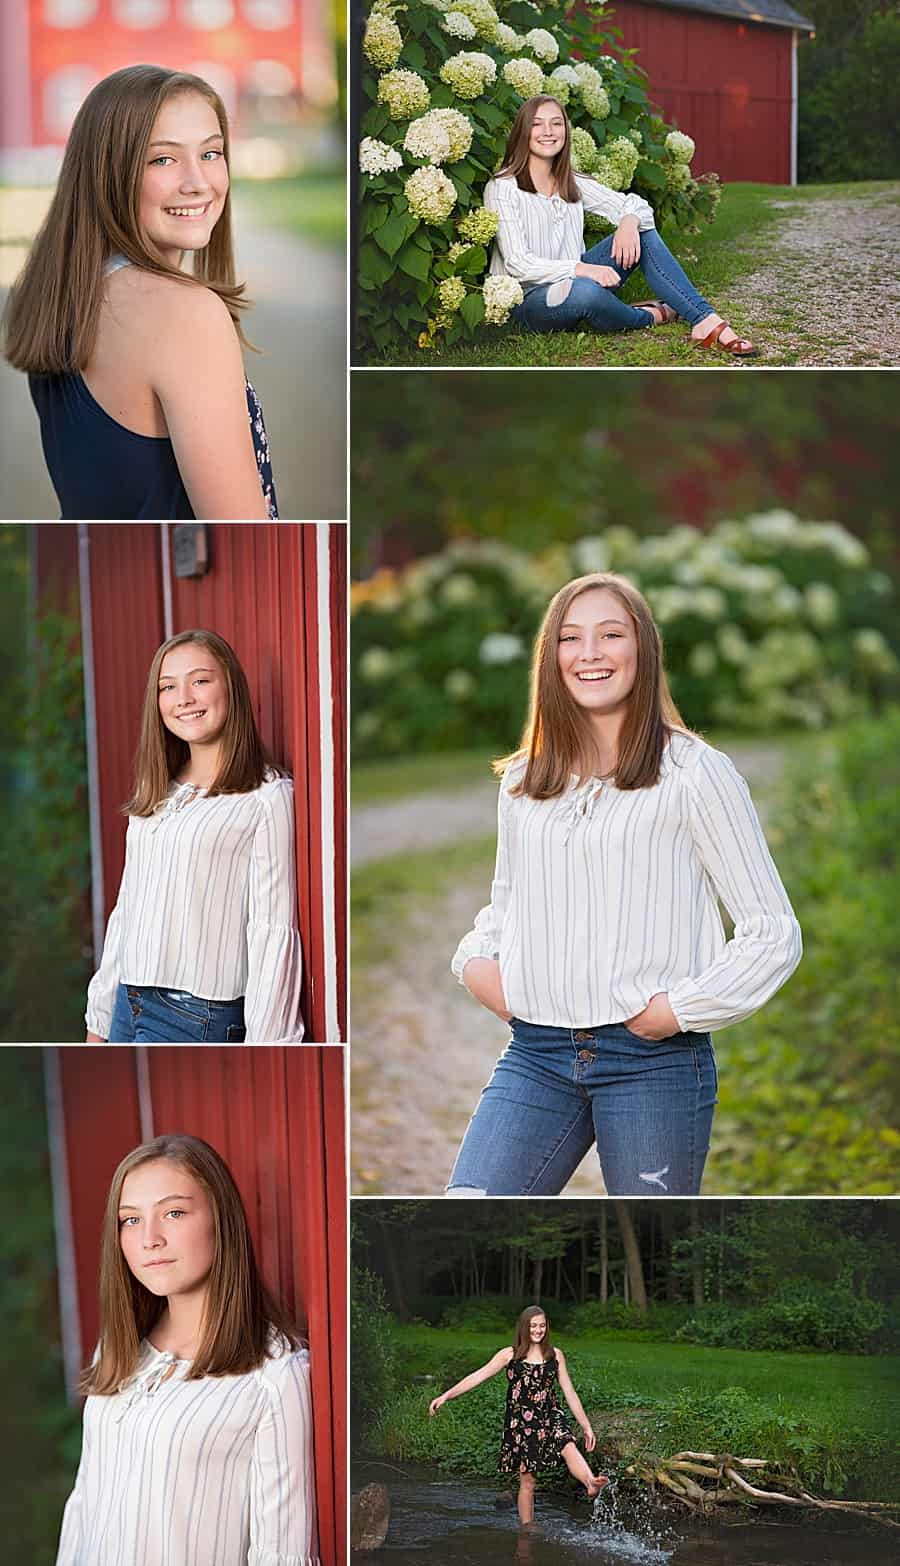 Richfield Historical Society Senior Pictures of Lake Country Lutheran High School Senior